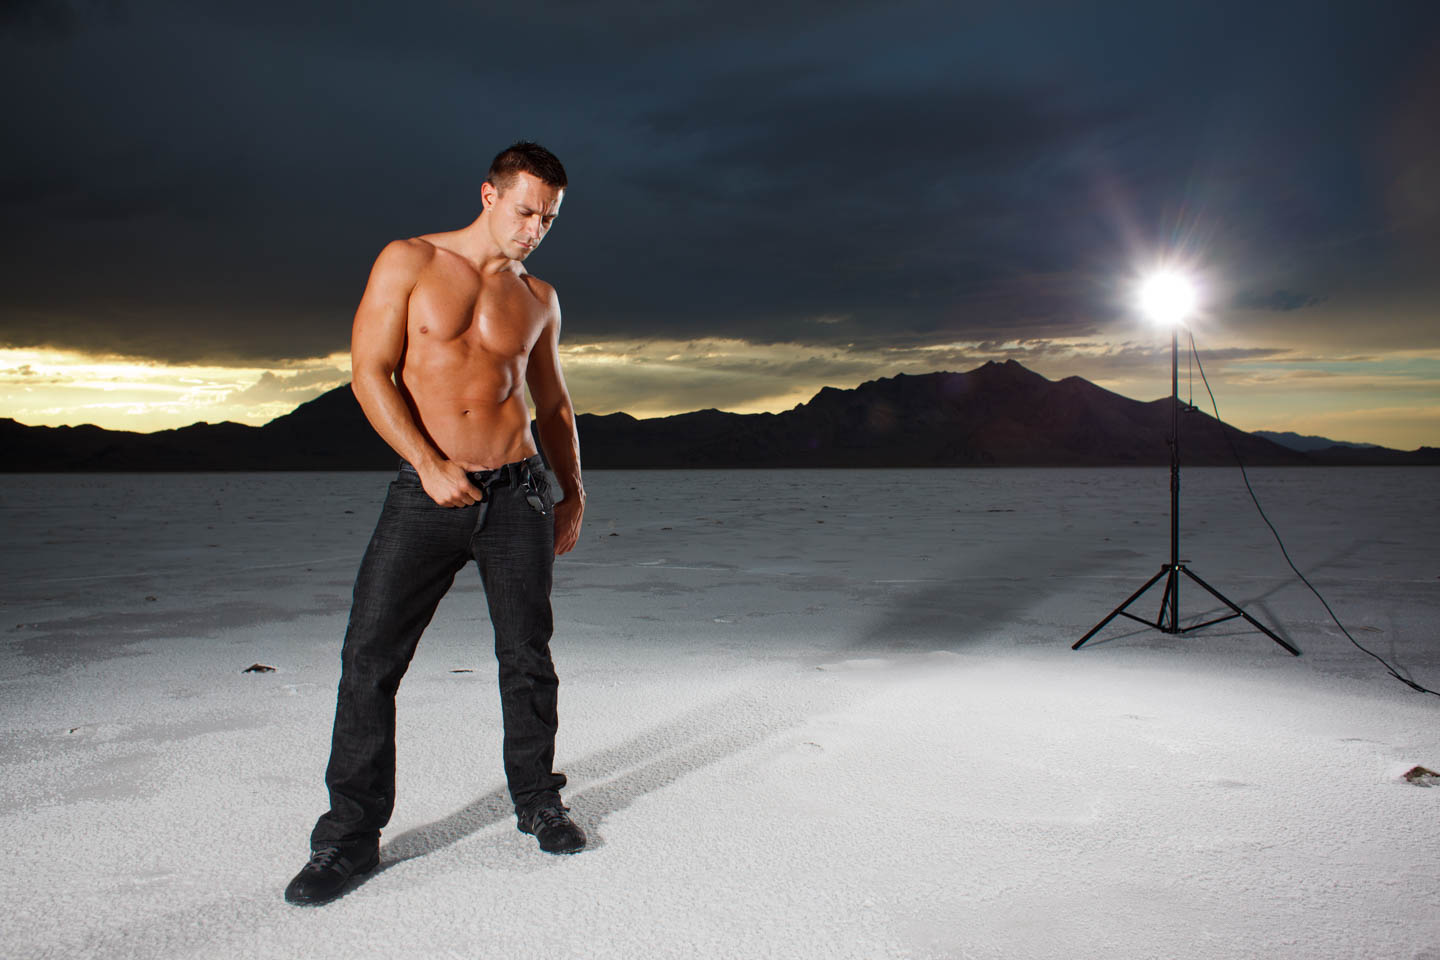 Cool lighting is required for successful Bonneville Salt Flat photo shoots